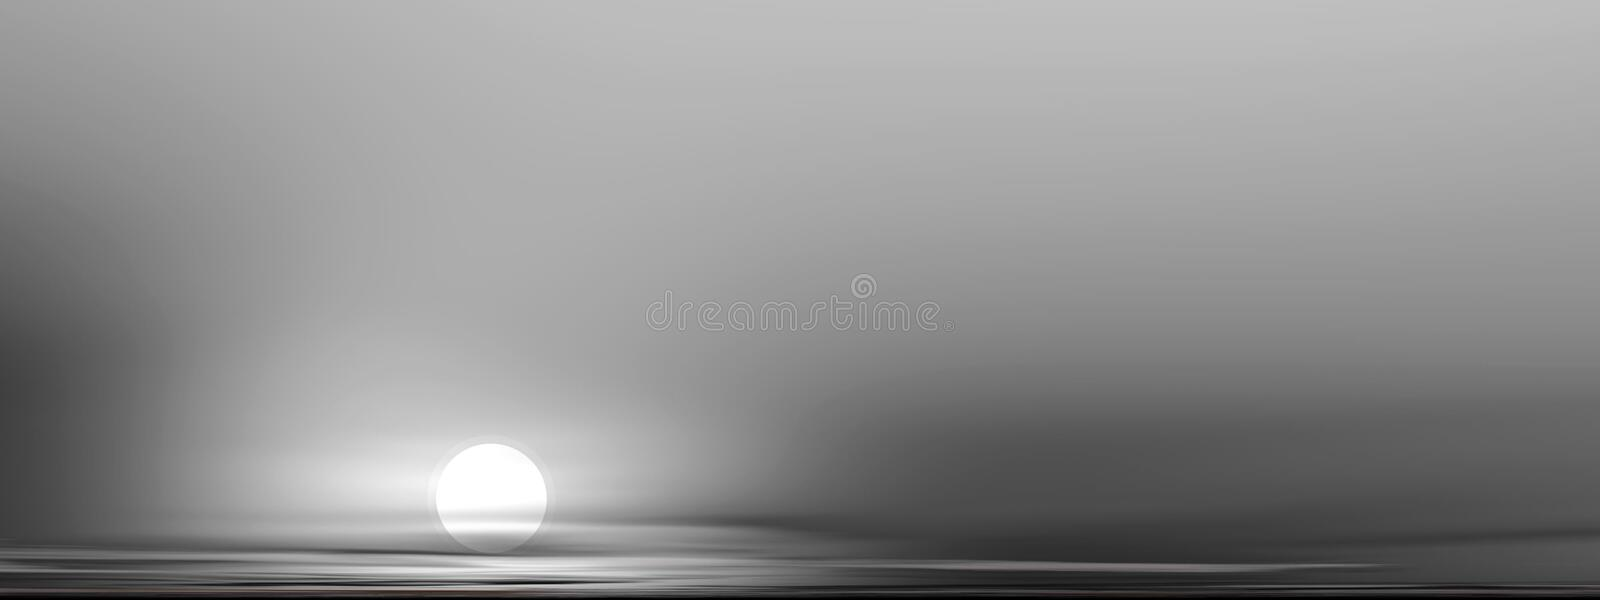 Download The moon illustration stock illustration. Image of panorama - 591749